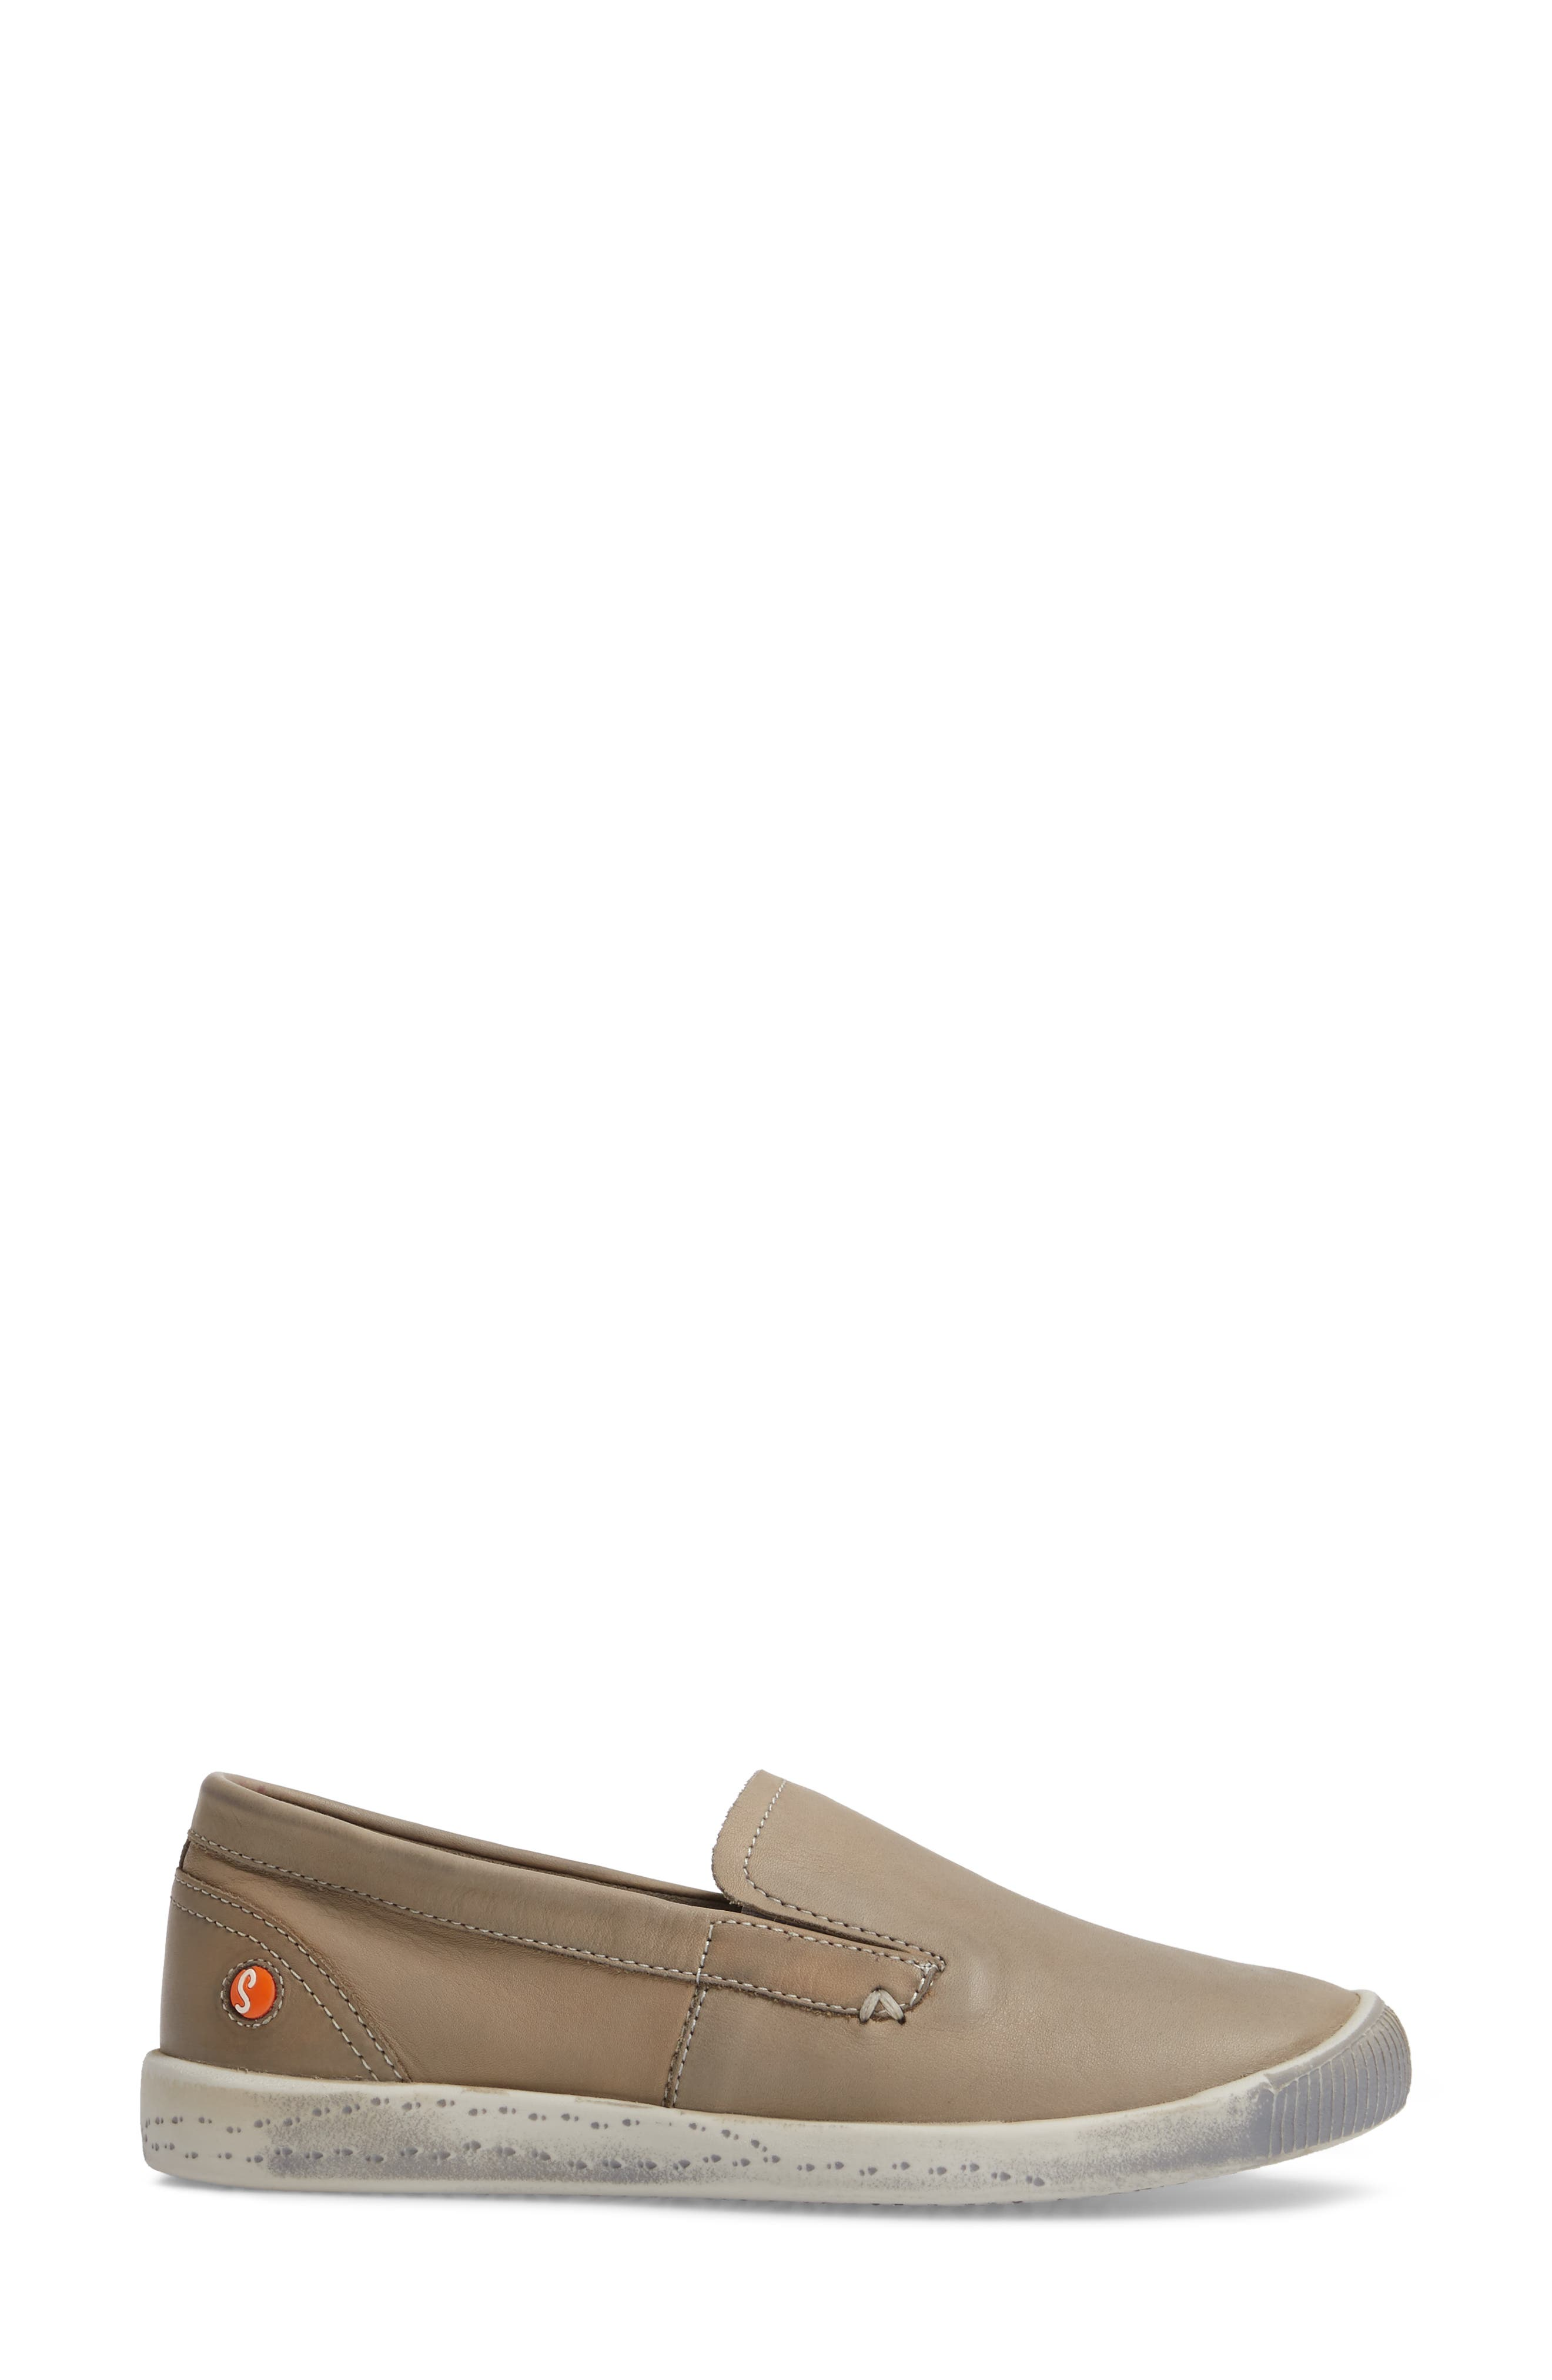 Ita Slip-On Sneaker,                             Alternate thumbnail 3, color,                             Taupe/ Taupe Leather